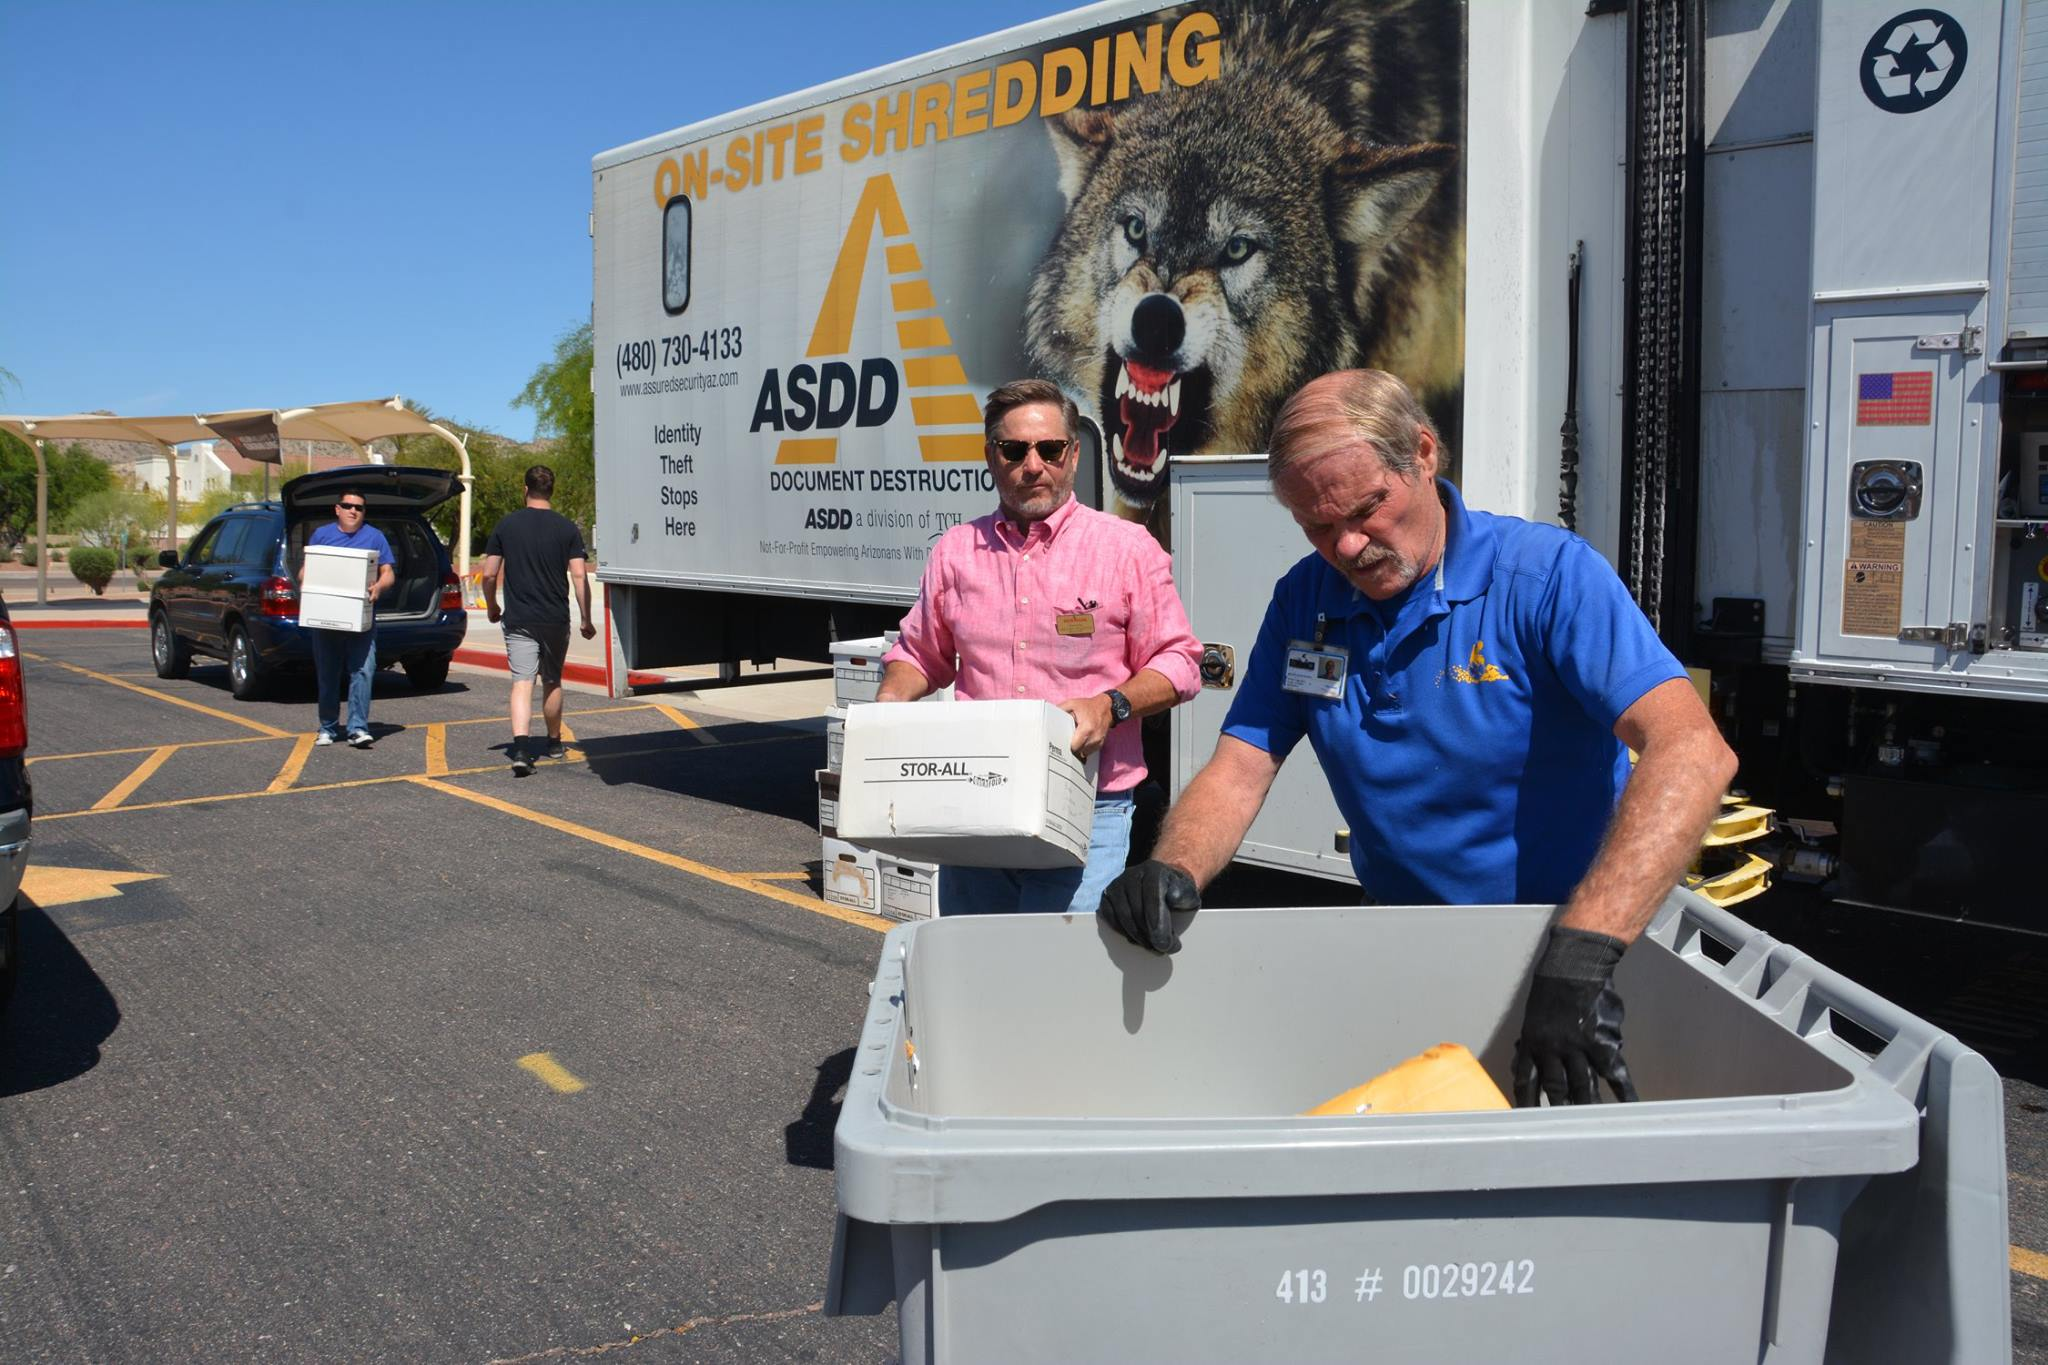 FREE Shred-A-Thon at Kyrene Monte Vista Elementary school